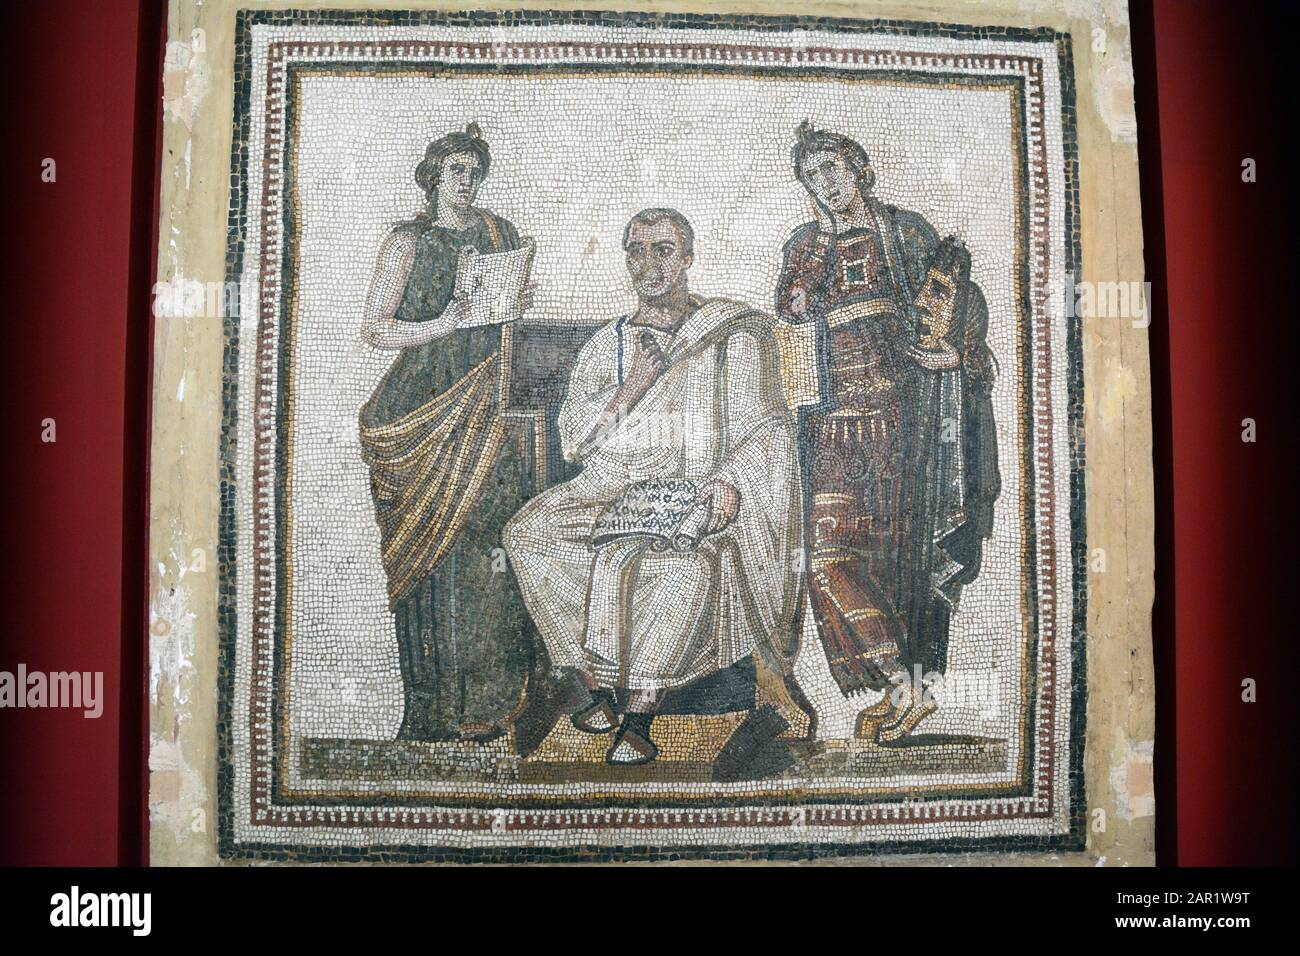 A Roman mosaic of the poet Virgil and two muses Calliope and Polymnia, found at Hadrumetum on display at the Bardo National Museum, Tunis, Tunisia. Stock Photo